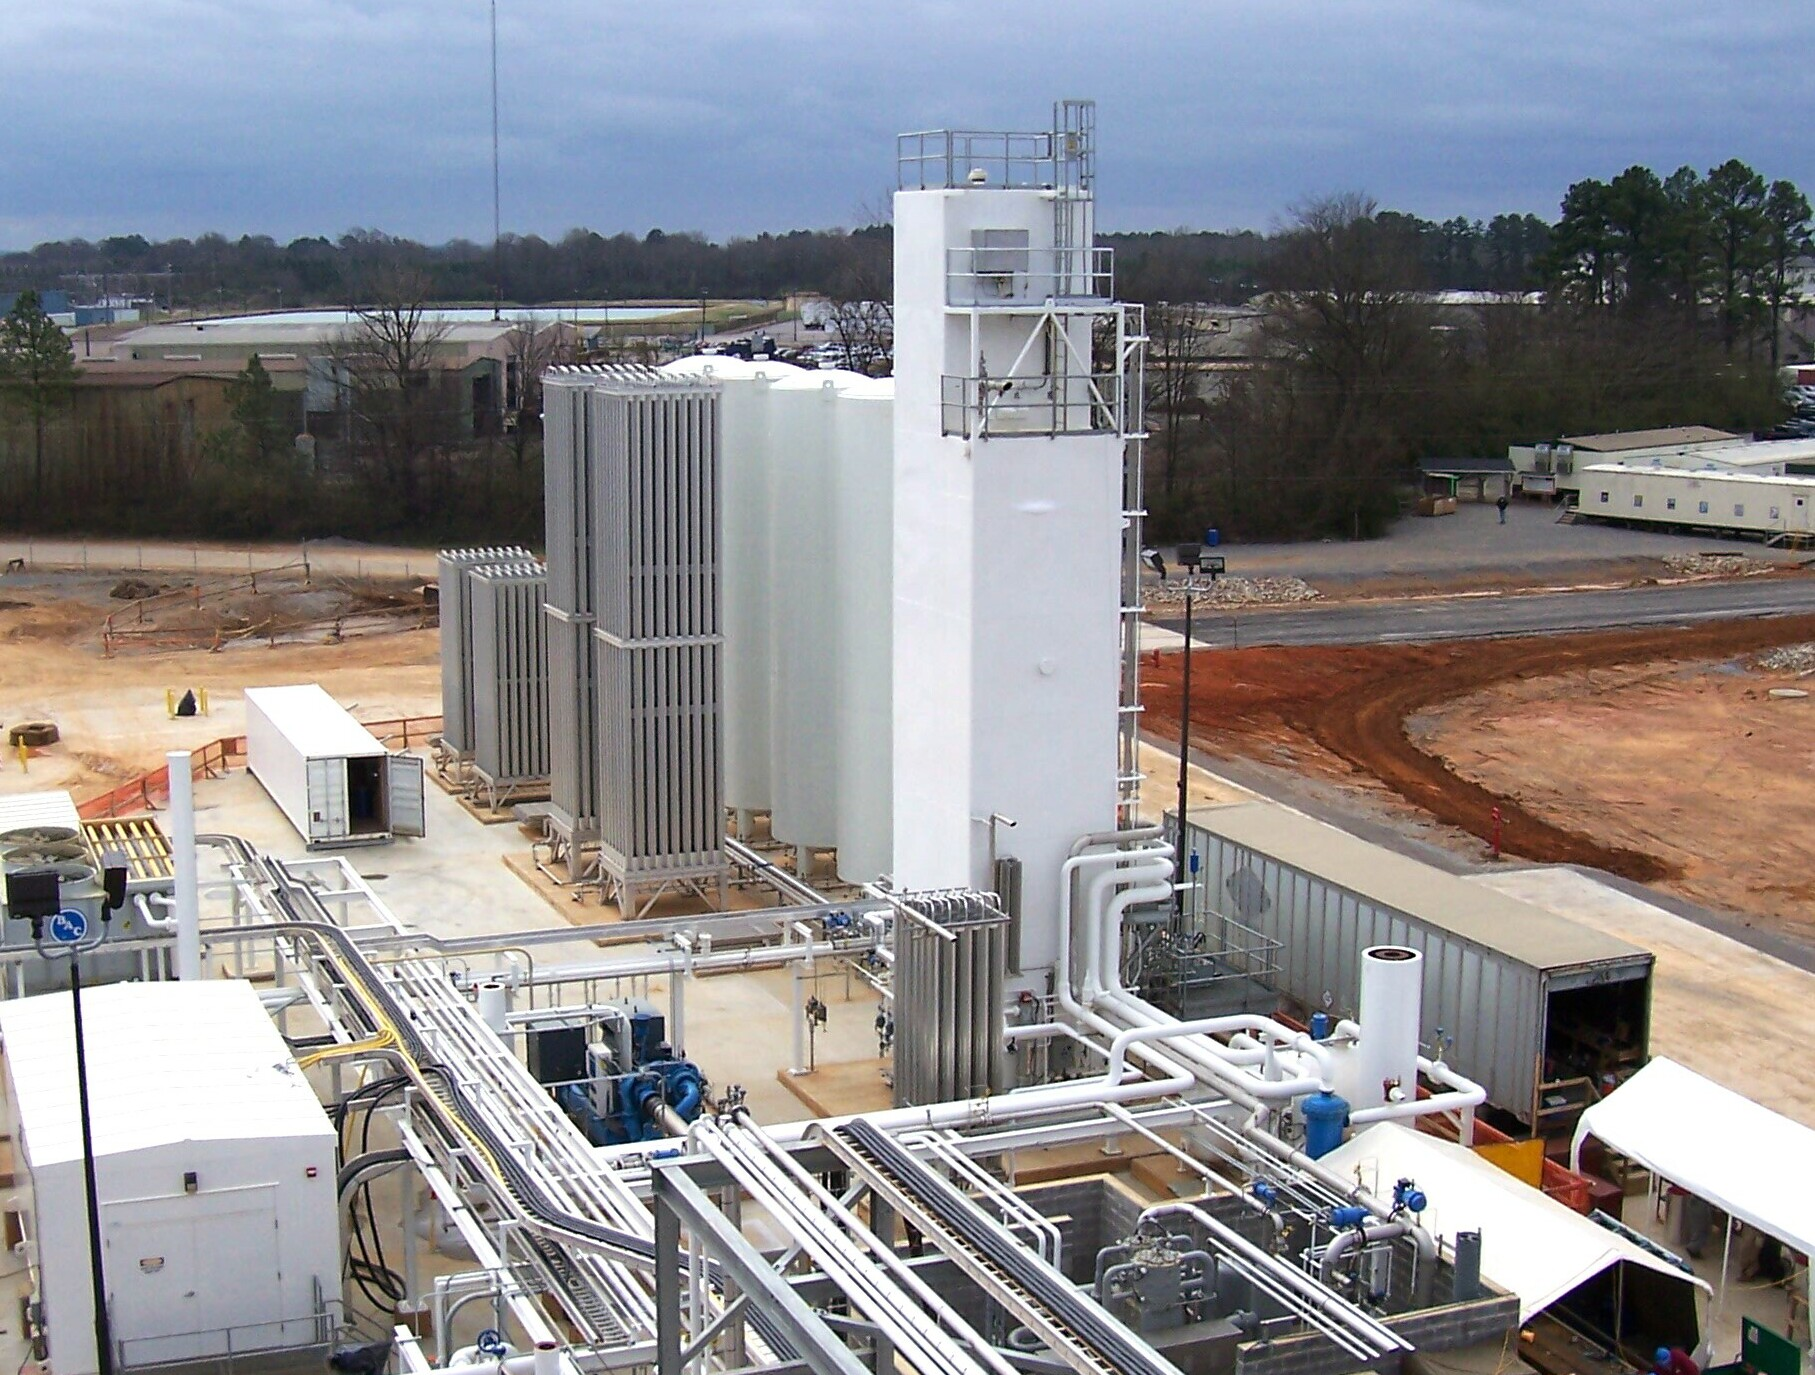 UIG installed - UCG operated air separation plant providing nitrogen and oxygen to Hunt Refining in Alabama